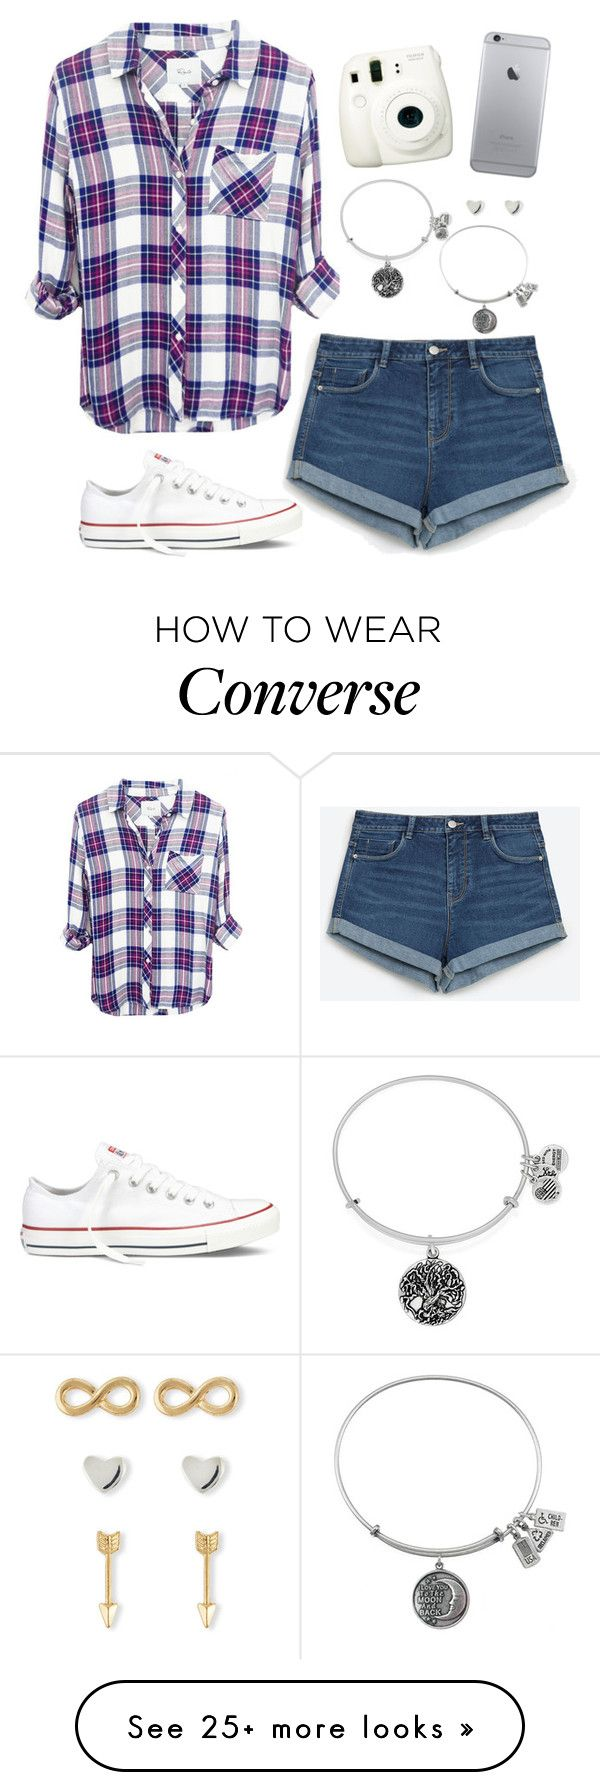 """""""Casual Outfit"""" by twaayy on Polyvore featuring Zara, Converse, Fuji, Alex and Ani and Jules Smith"""